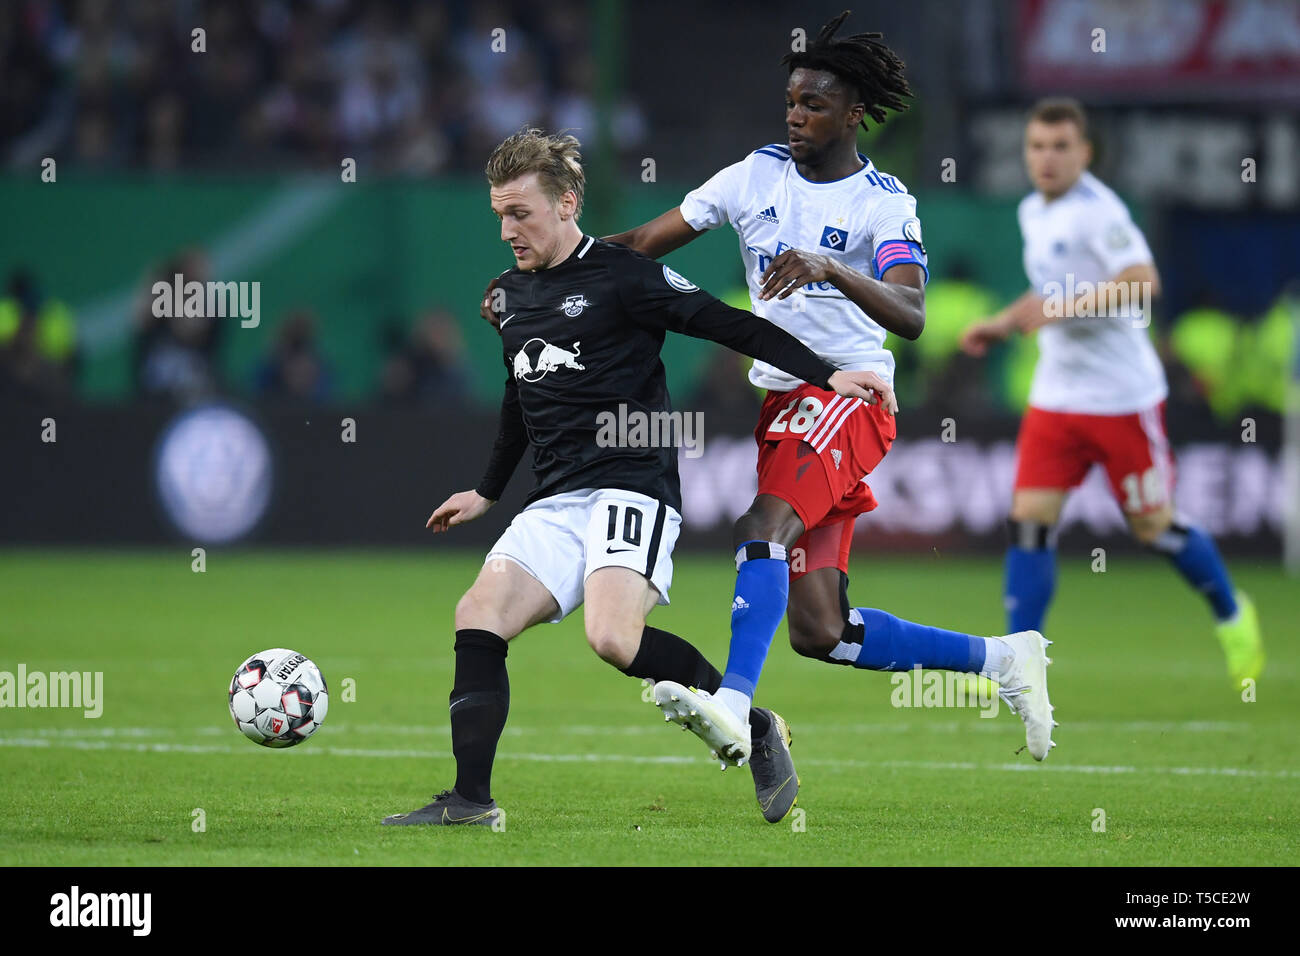 HAMBURG, GERMANY - APRIL 23: Gideon Jung (R) of Hamburg and Emil Forsberg (L) of Leipzig competes for the ball during the DFB Pokal semi final match b - Stock Image